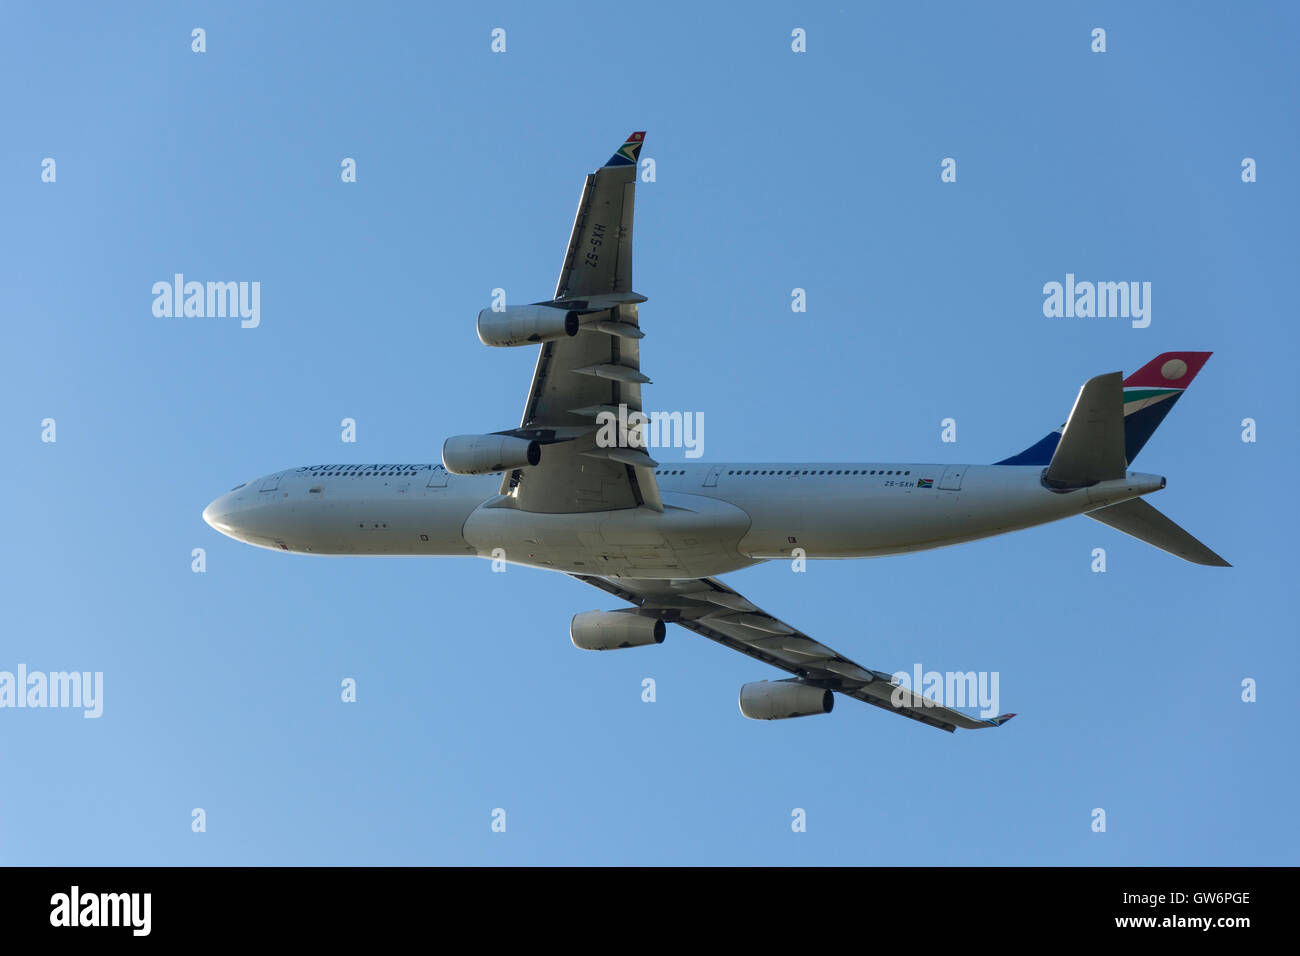 South African Airways Airbus A340-313 aircraft taking off from Heathrow Airport, Greater London, England, United - Stock Image